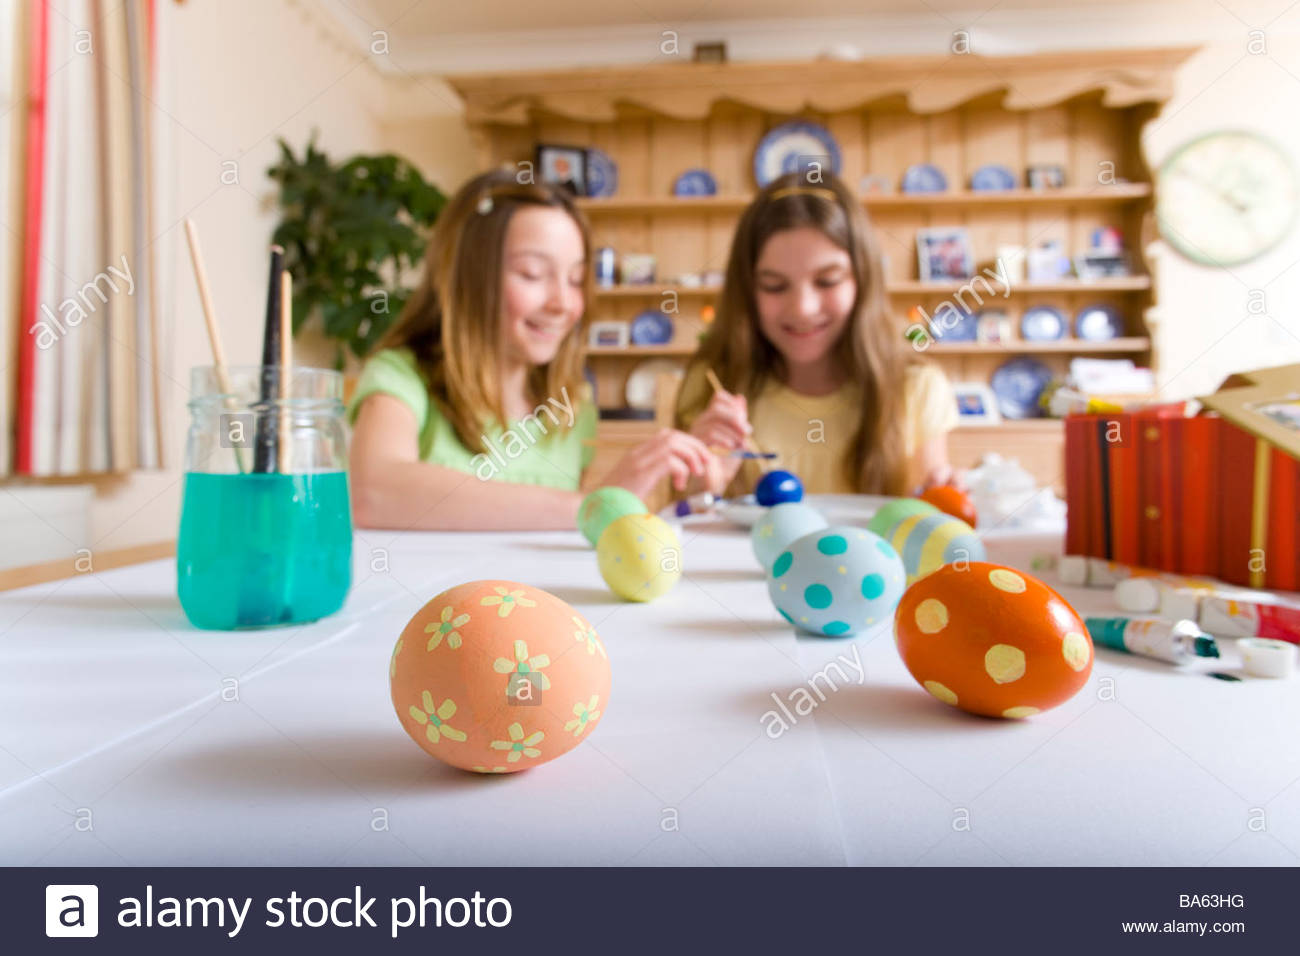 Two young girls decorating Easter eggs - Stock Image